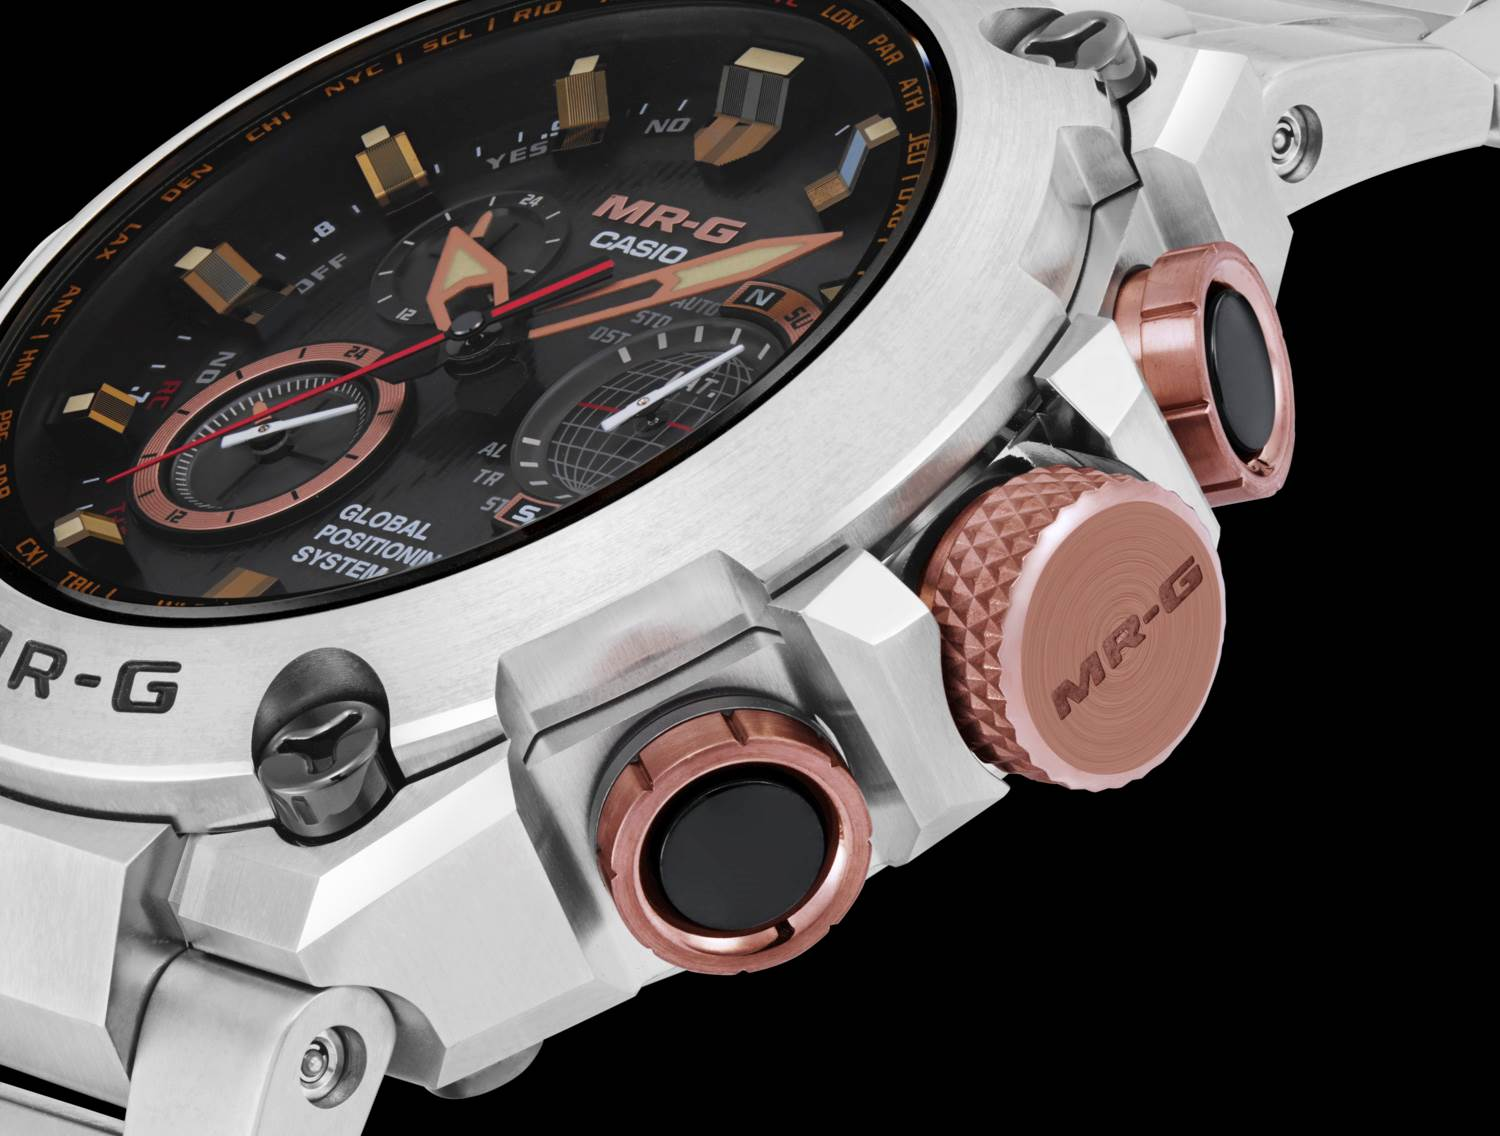 Casio G Shock Mrg G1000dc Masterhorologer Gst 200cp 9a Mr Has Gained Popularity Among Adults Who Want To Enjoy A Watch For Many Years Come